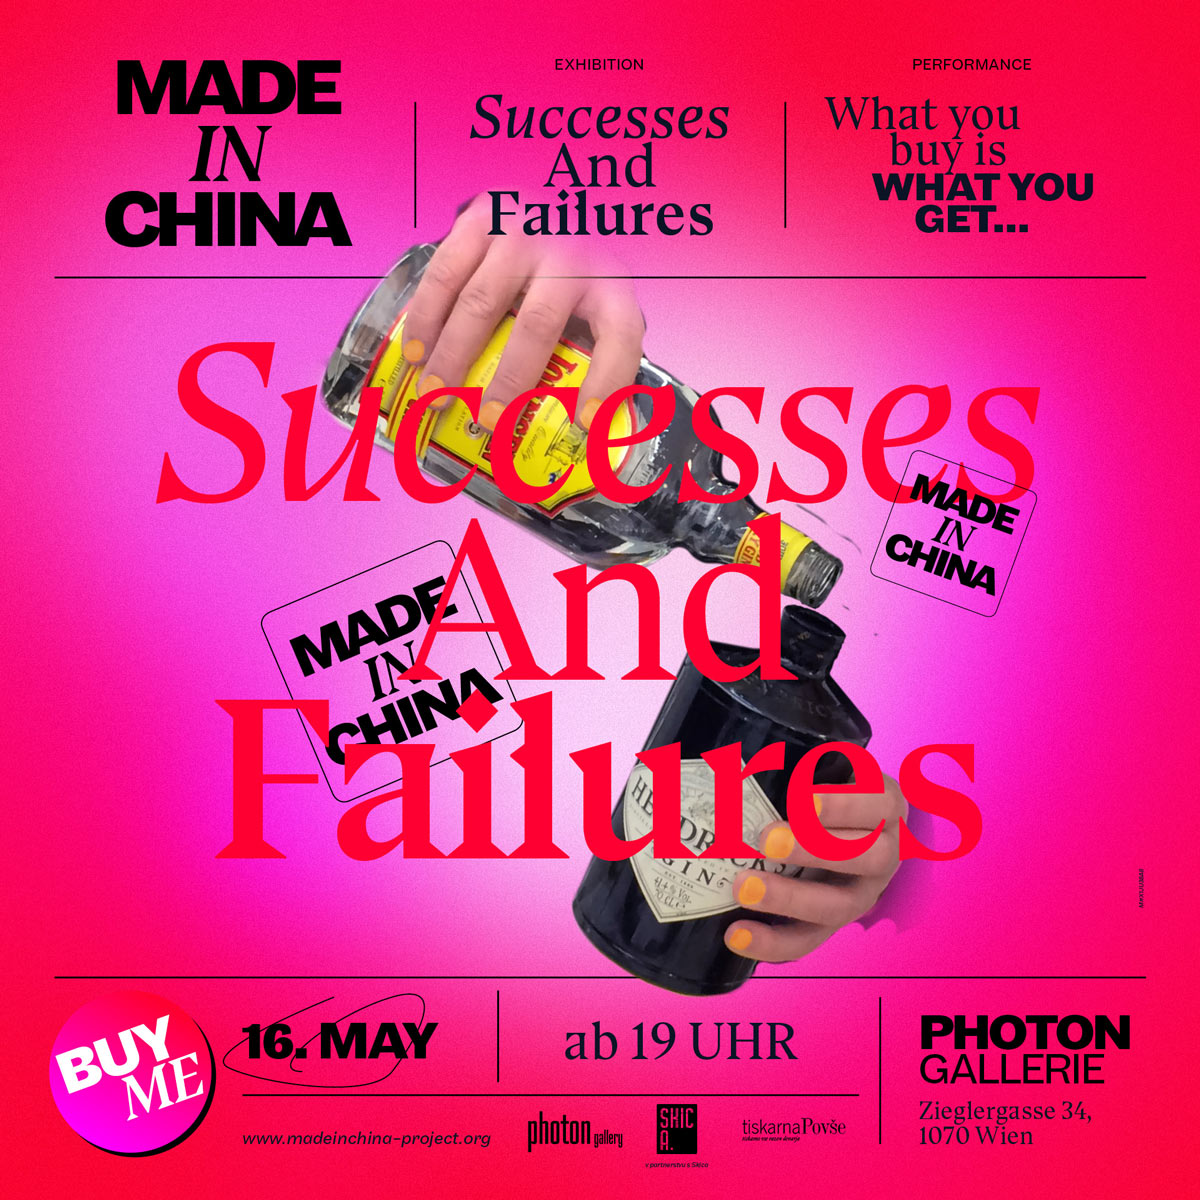 Made in China: Successes And Failures